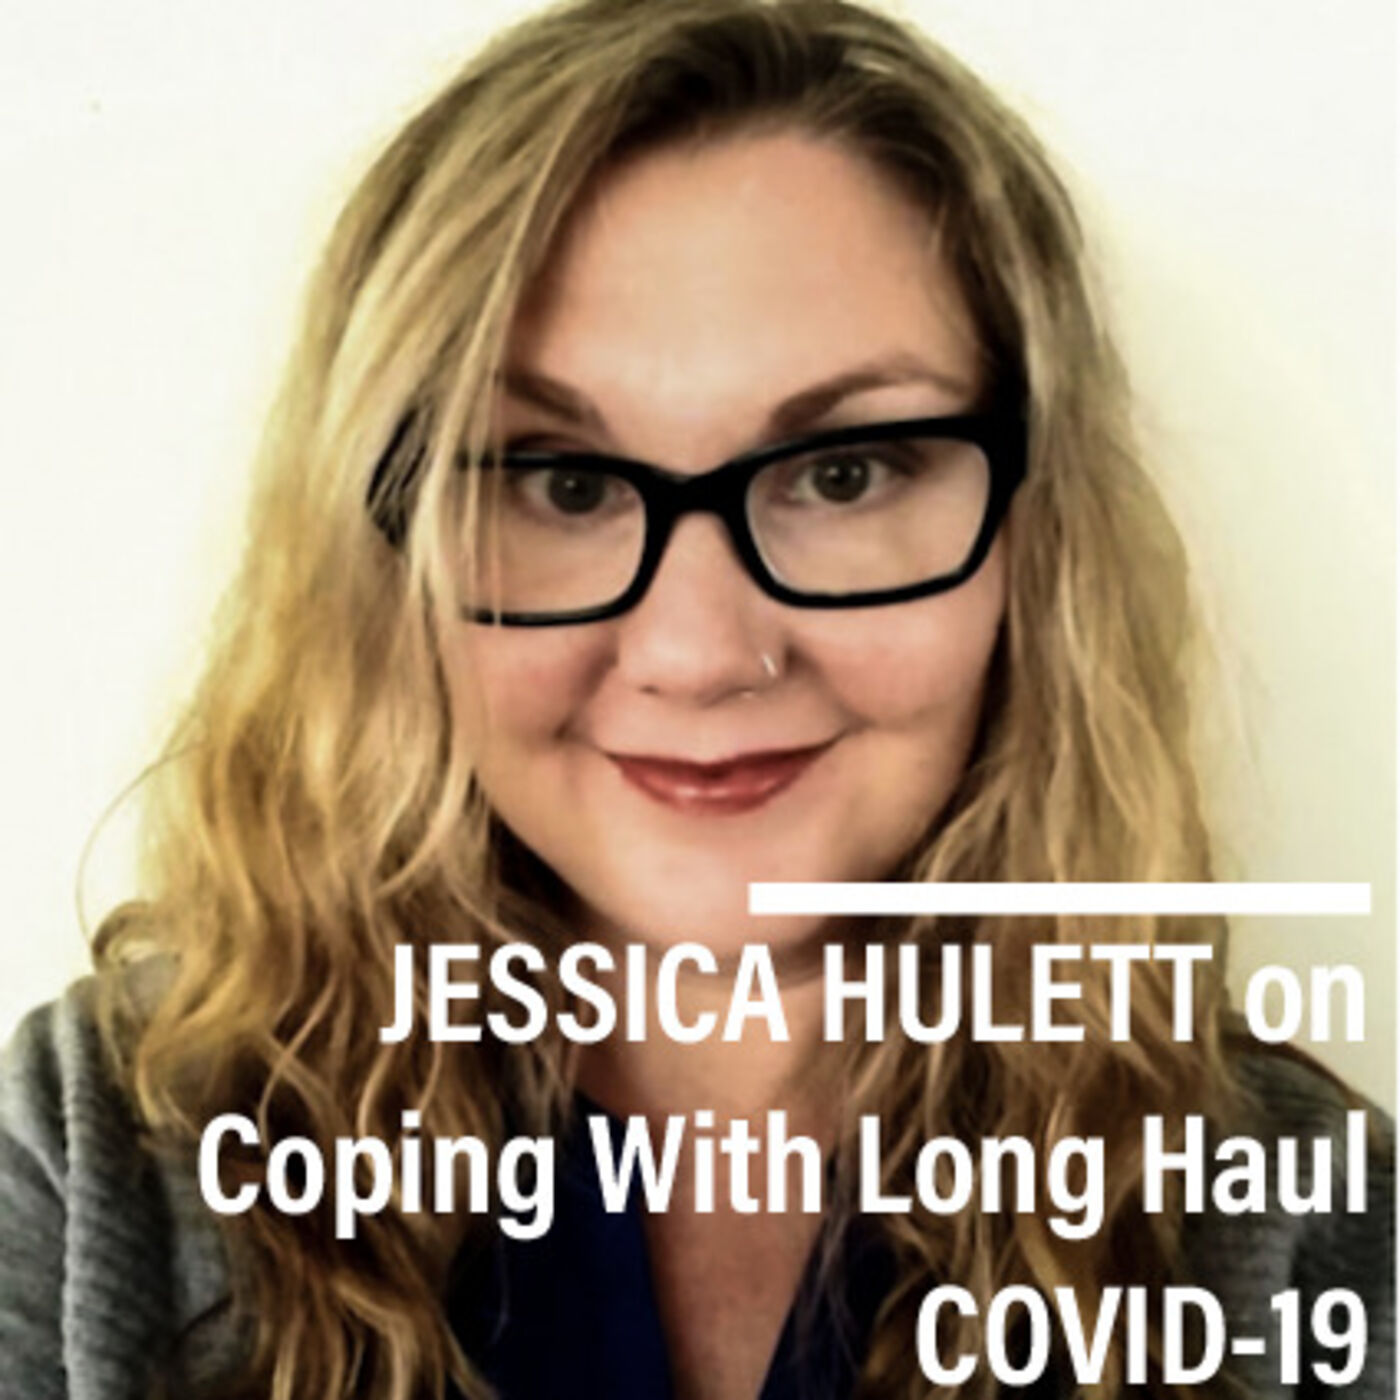 Jessica Hulett on Coping with Long-Haul COVID